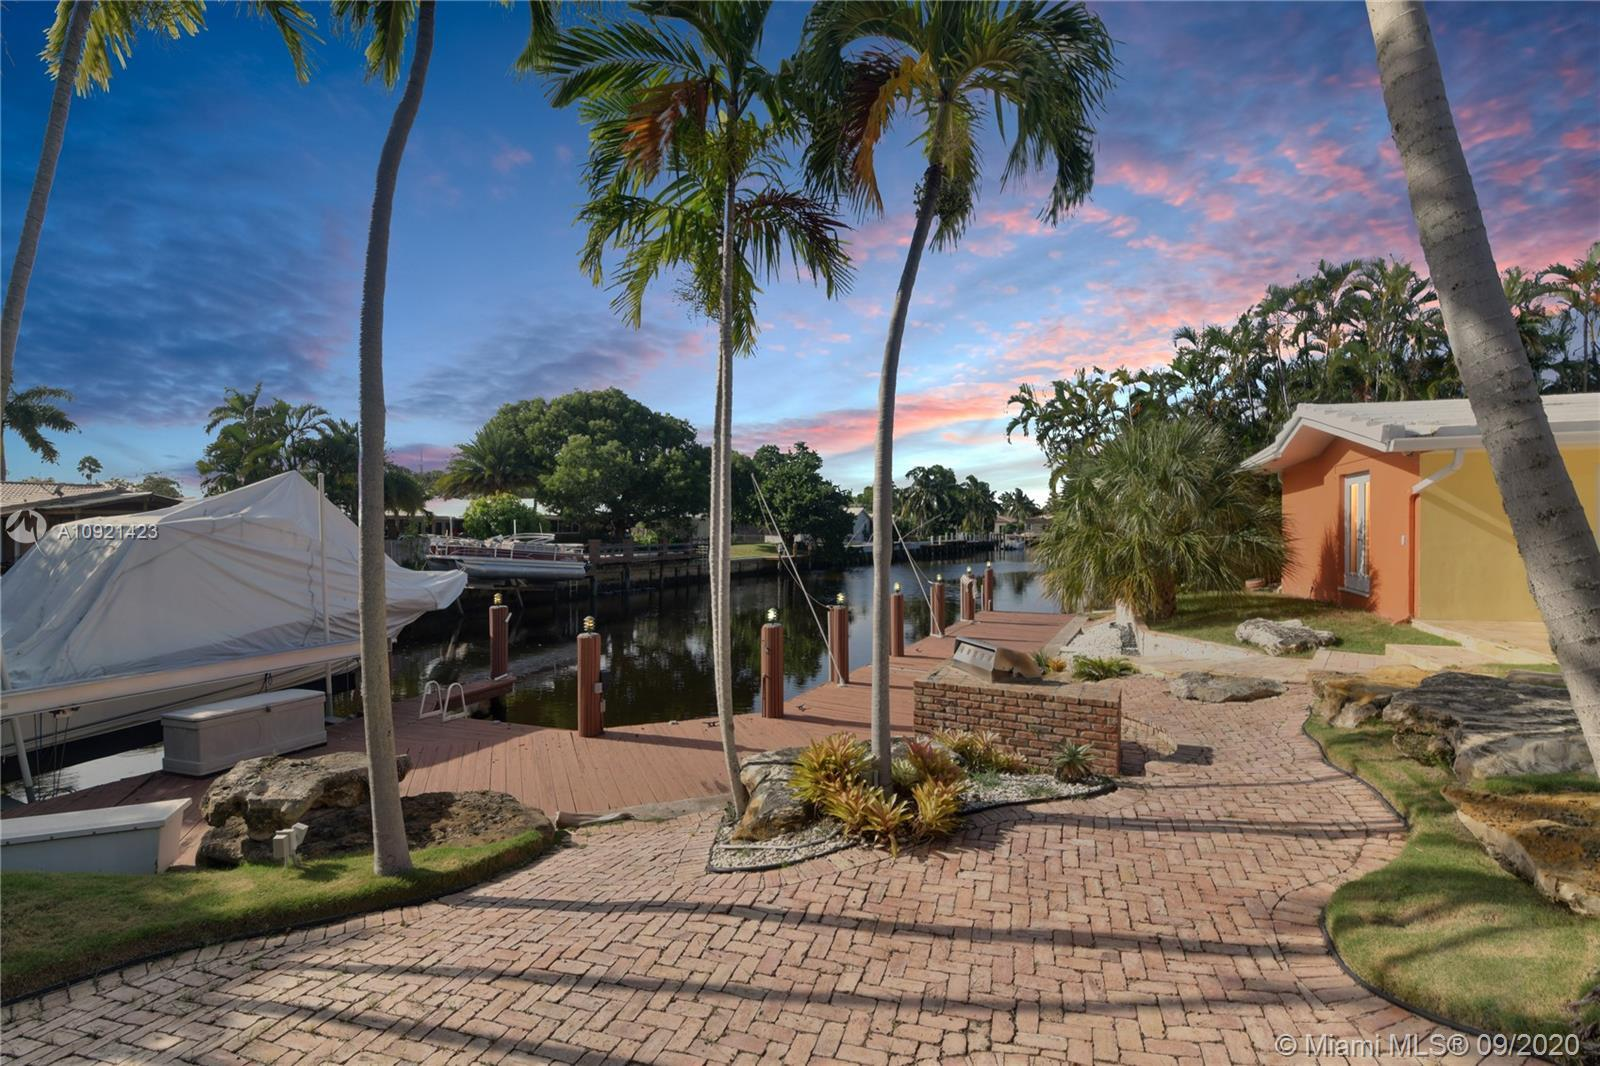 Waterfront TROPICAL PARADISE home in the Landings with open floor plan and amazing backyard perfect